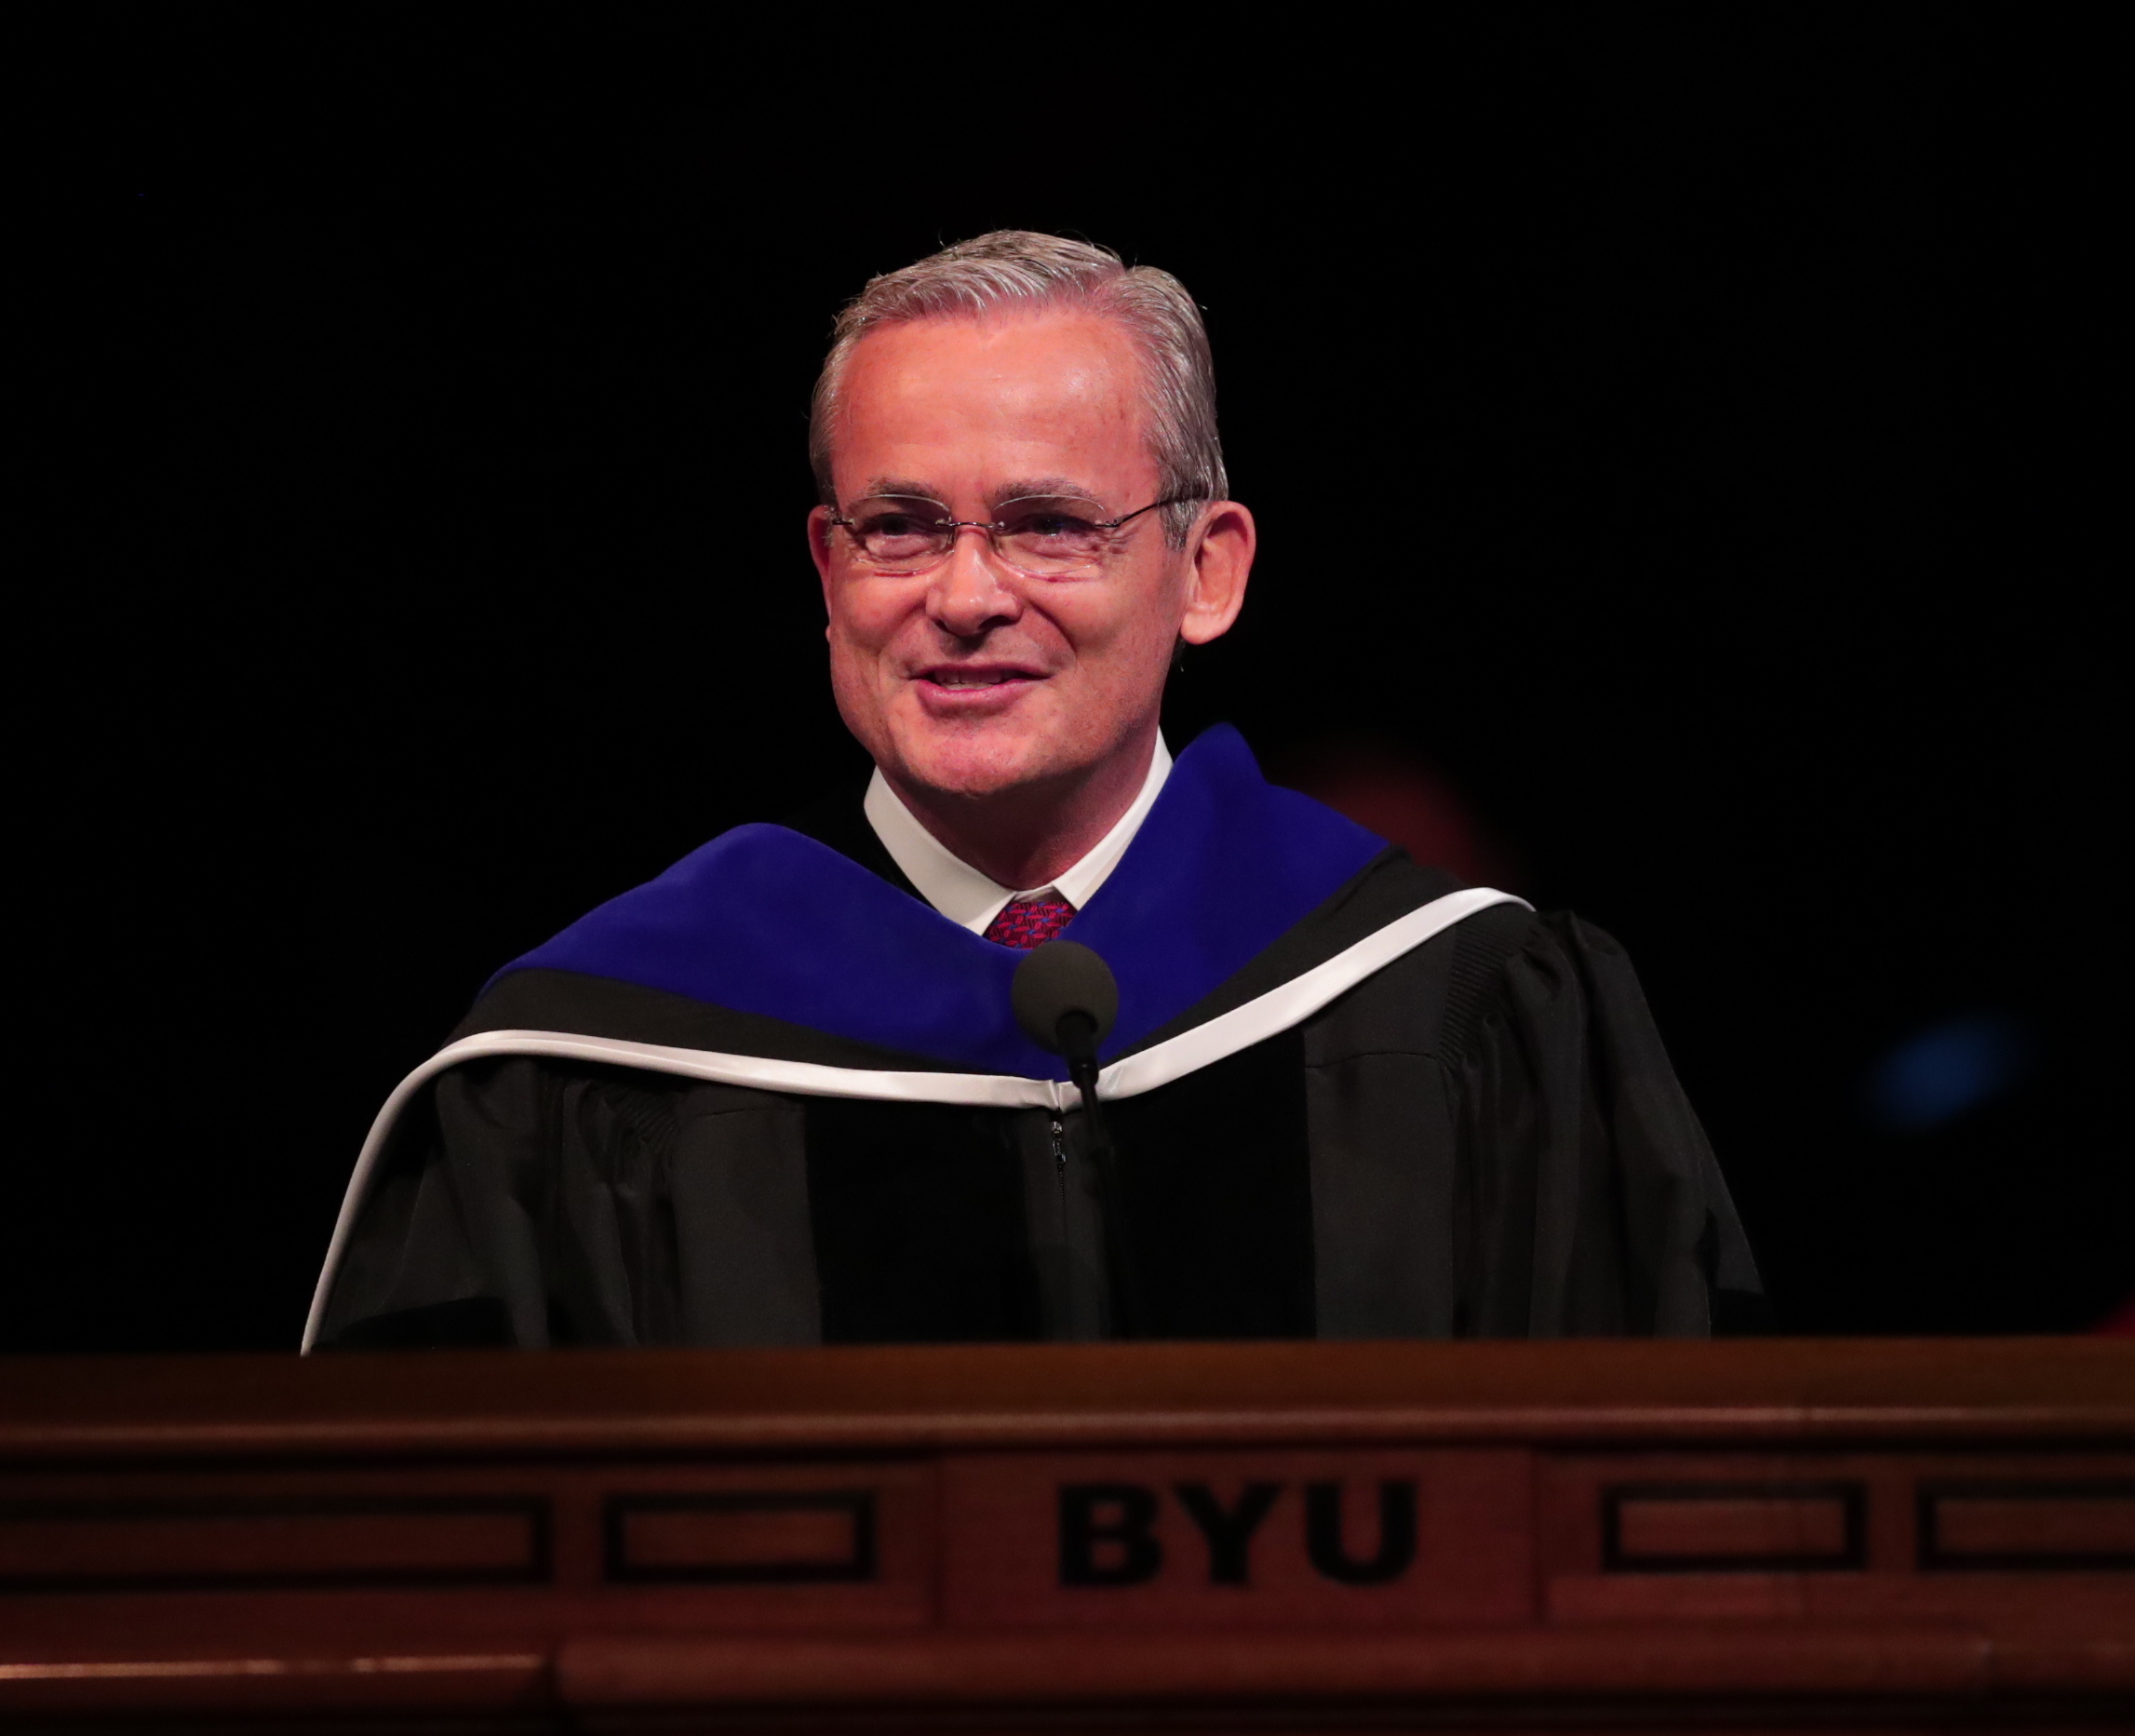 Elder Patrick Kearon of the Presidency of the Seventy offers the principle address at the BYU Commencement on April 25, 2019.